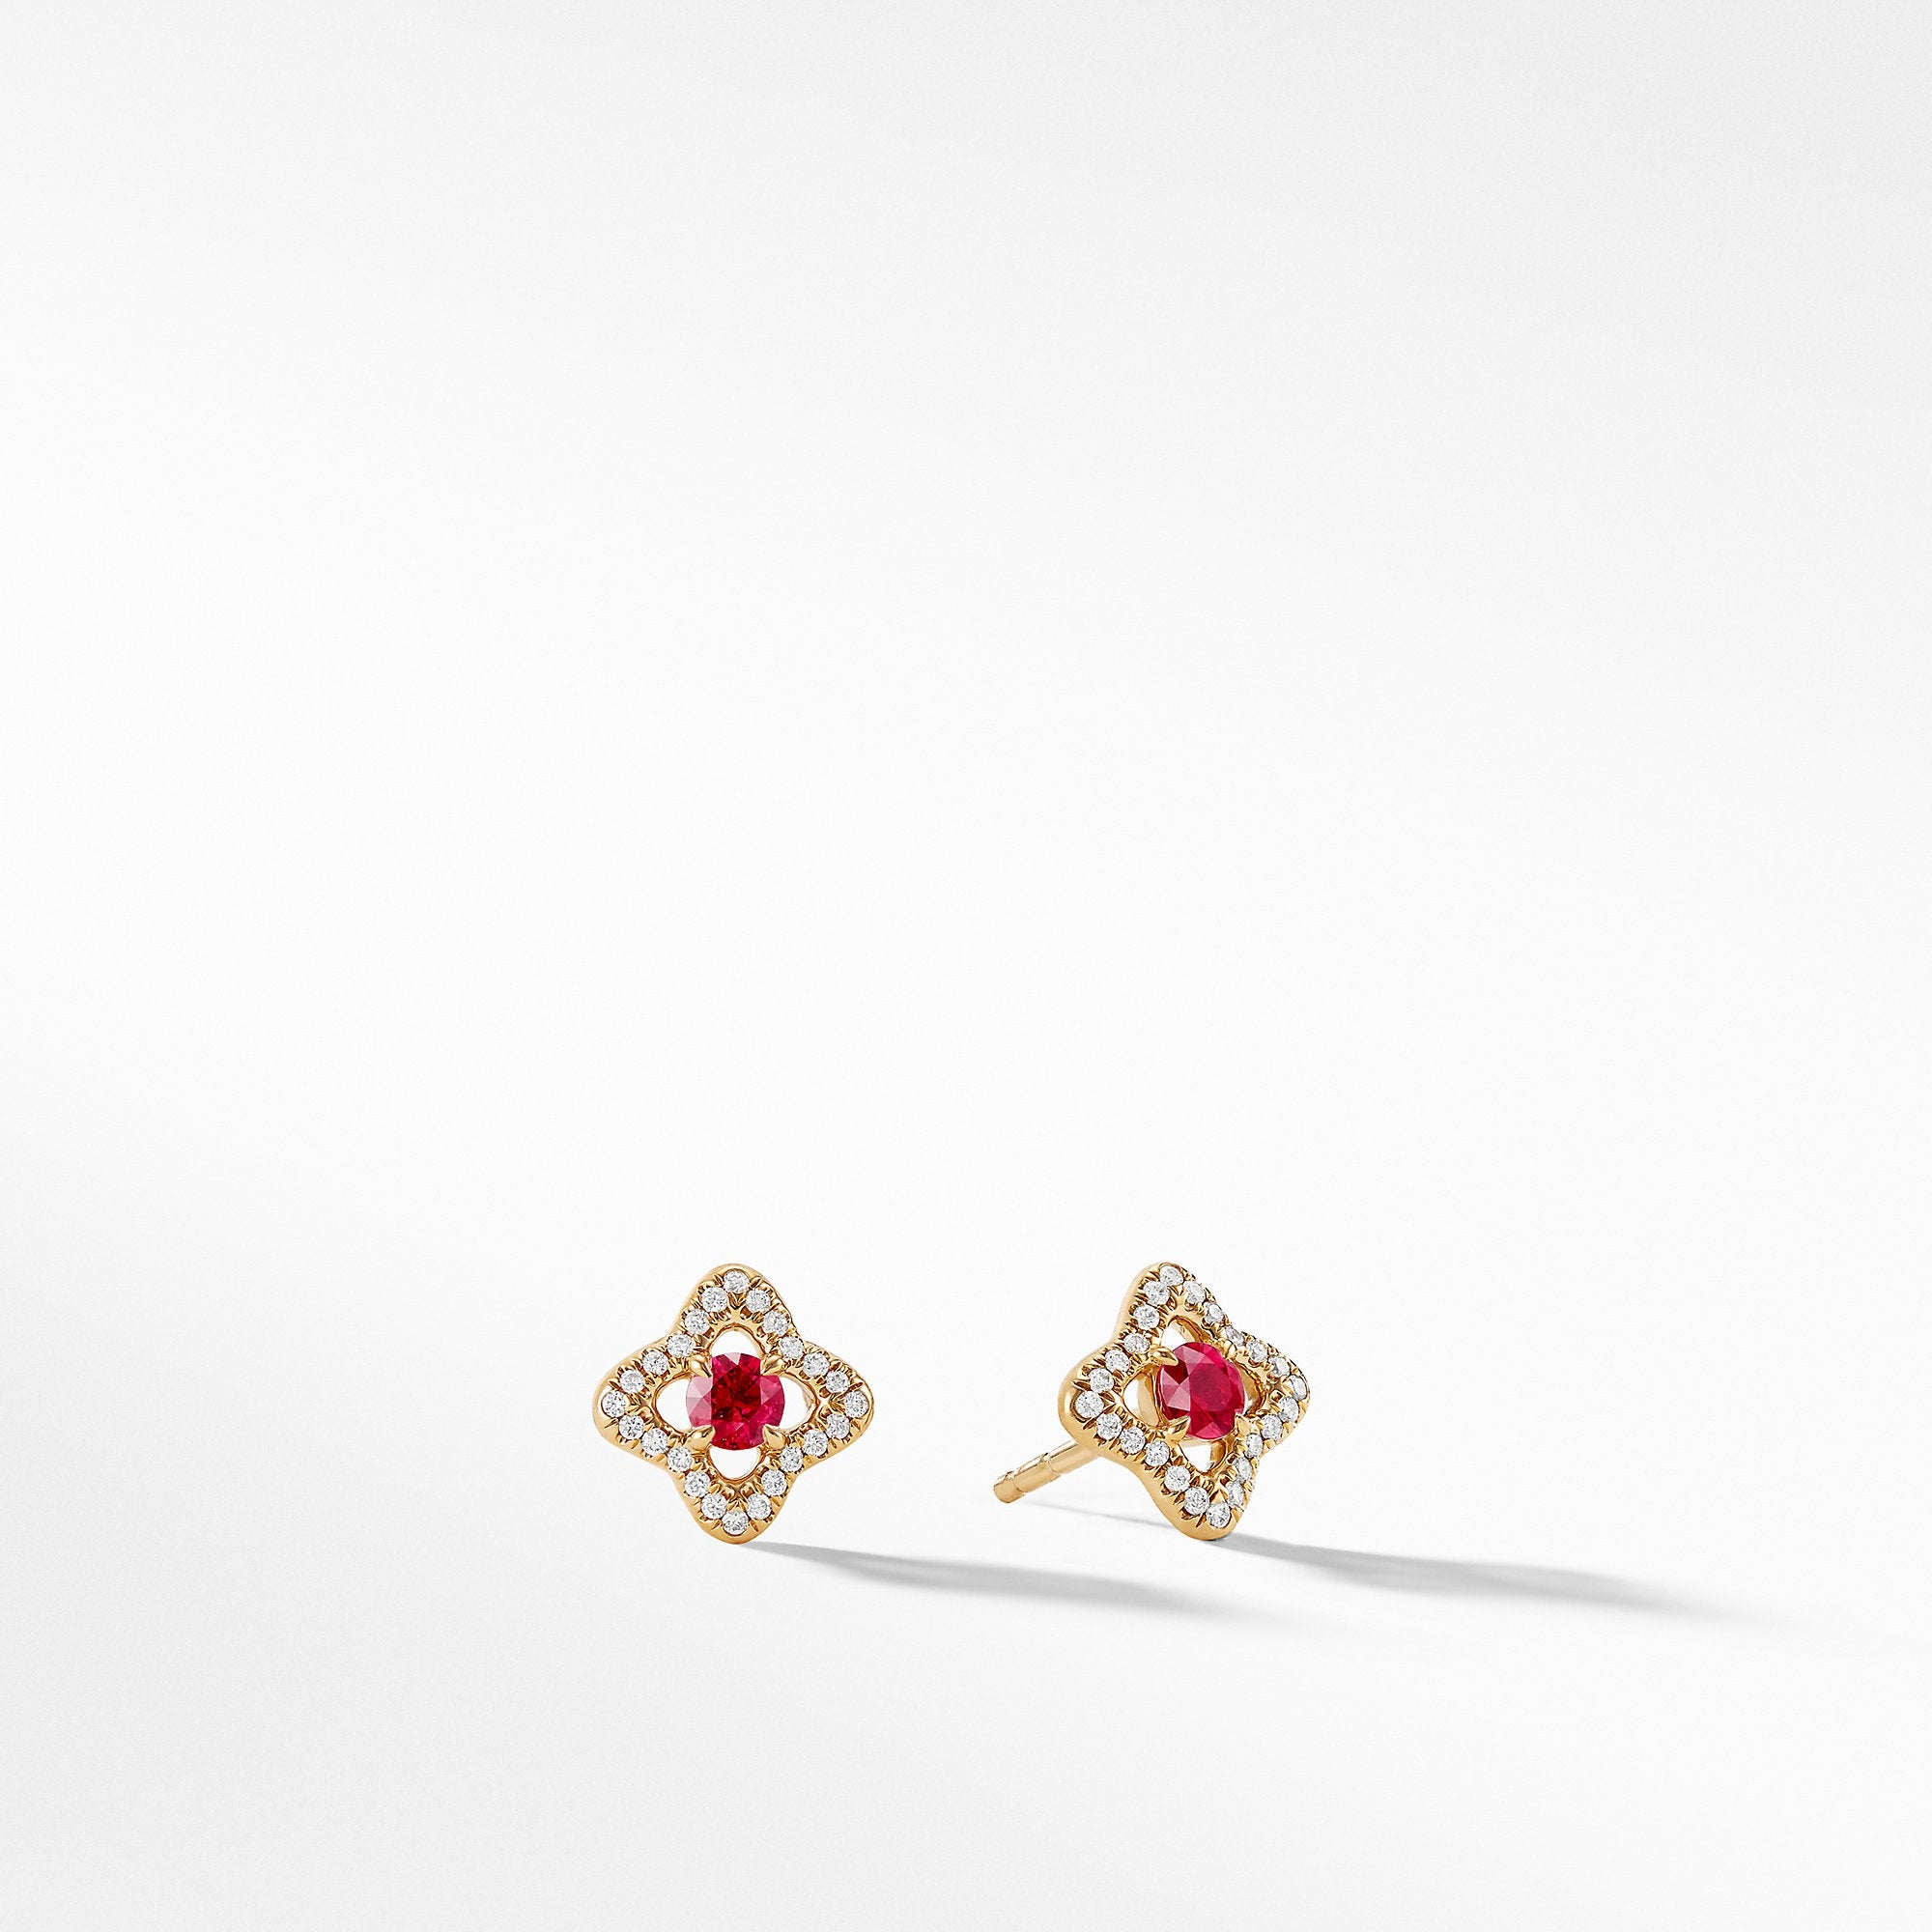 Earrings with Rubies and Diamonds in 18K Gold